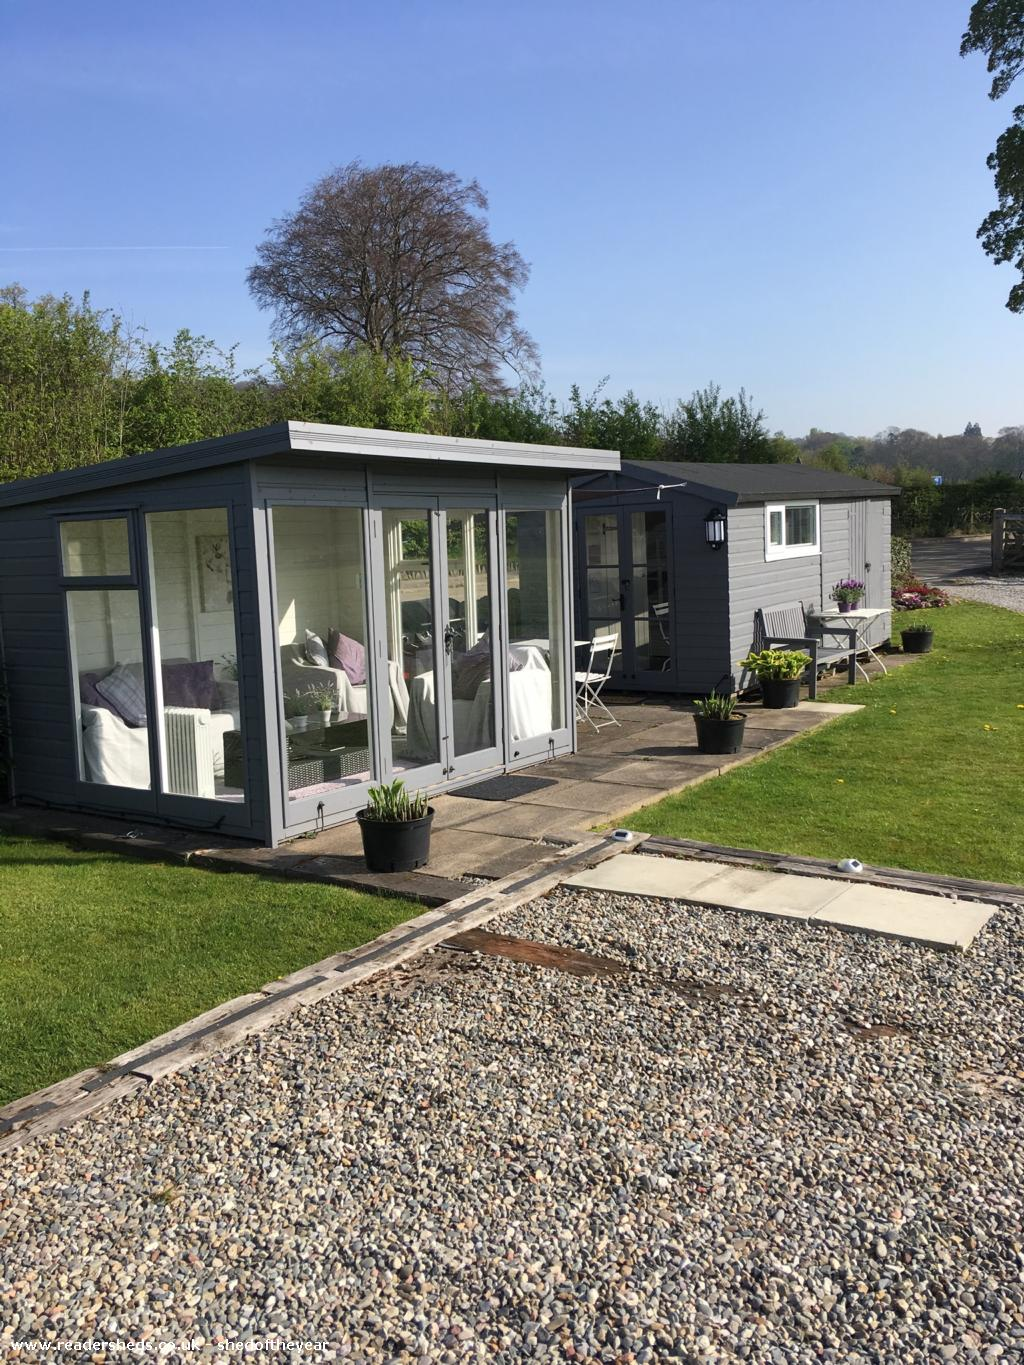 Photo of Pont Melin Shed, entry to Shed of the year-Summerhouse &bunkbeds